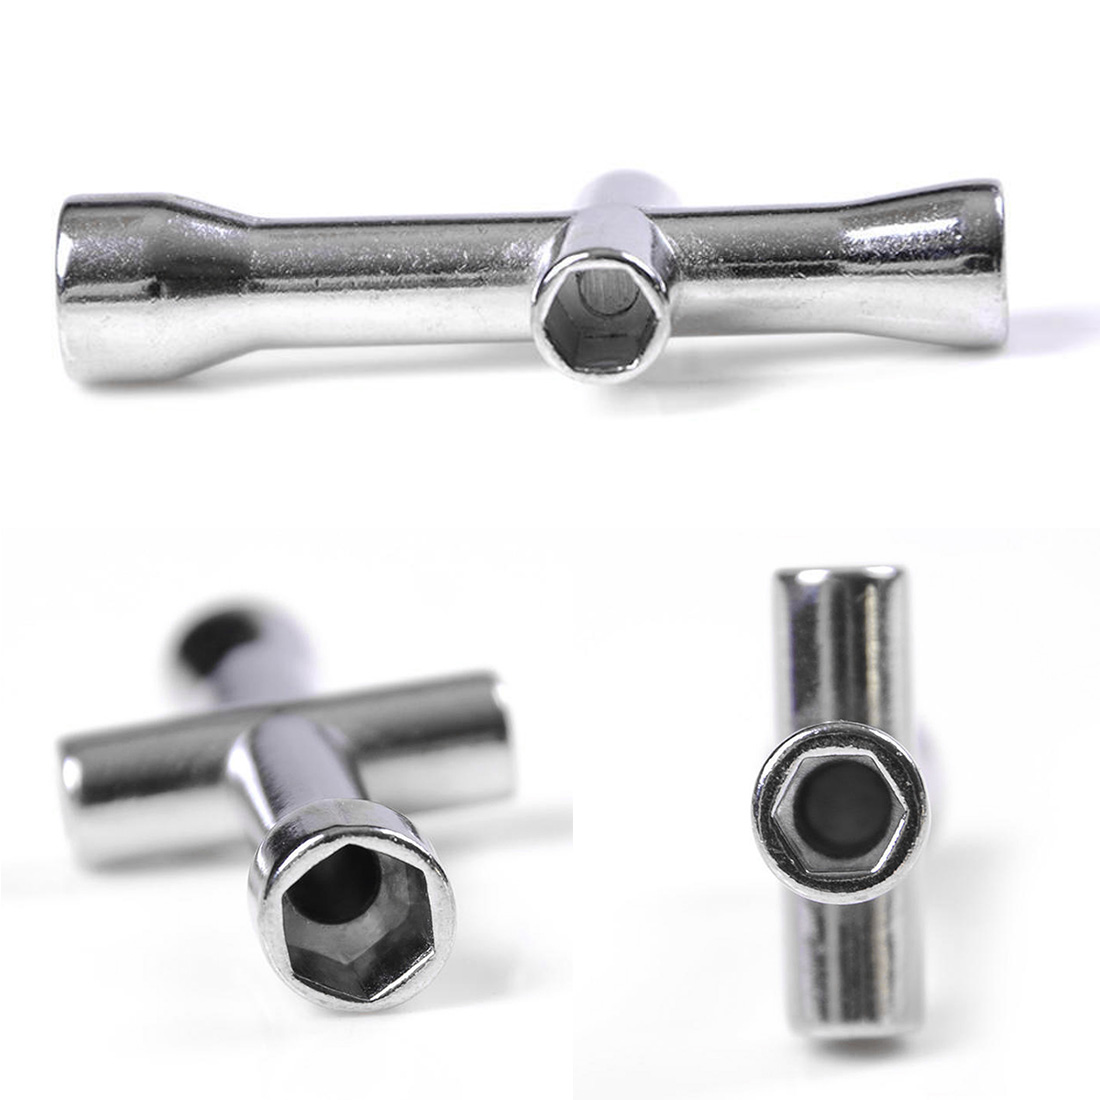 Car Cross Sleeve Wrench Suitable For Mini M2 M2.5 M3 M4 Screw Nut Hexagonal Cross Wrench Sleeve Maintenance Tool